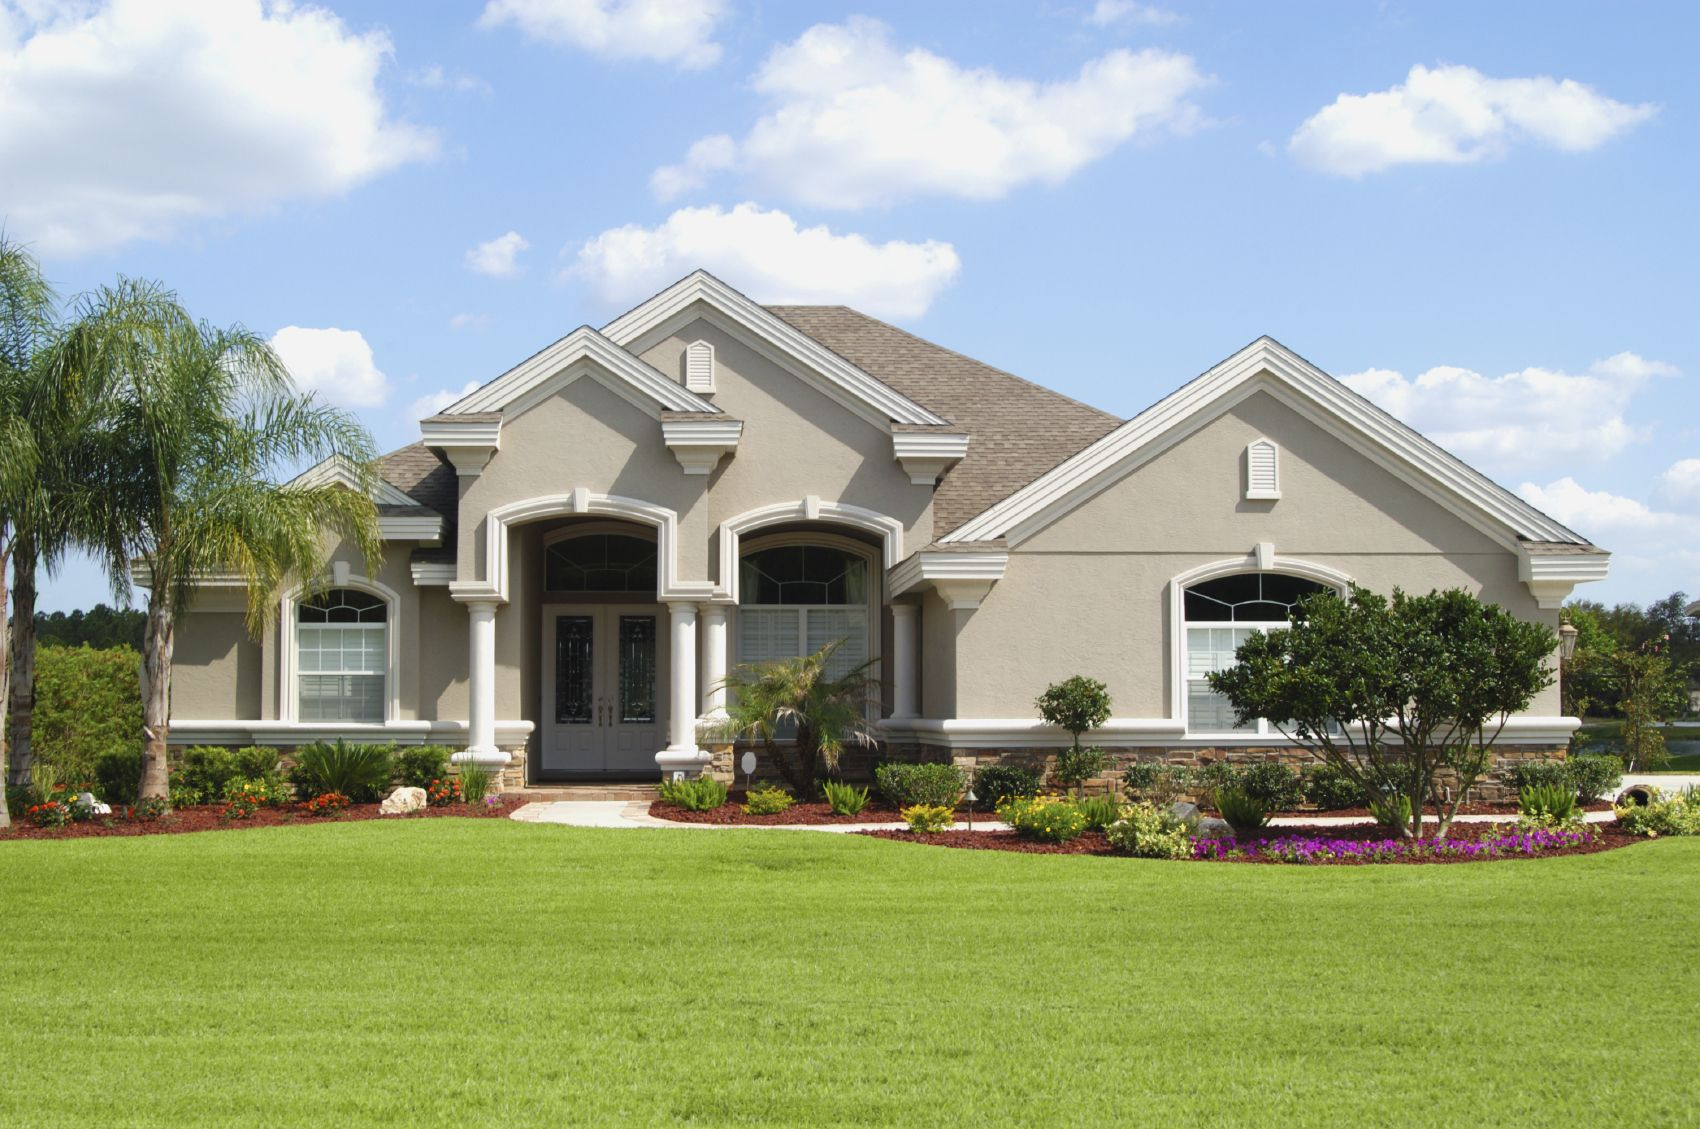 Exterior Paint Colors For Homes Is Information That Is Suitable For You When Confused To Choose